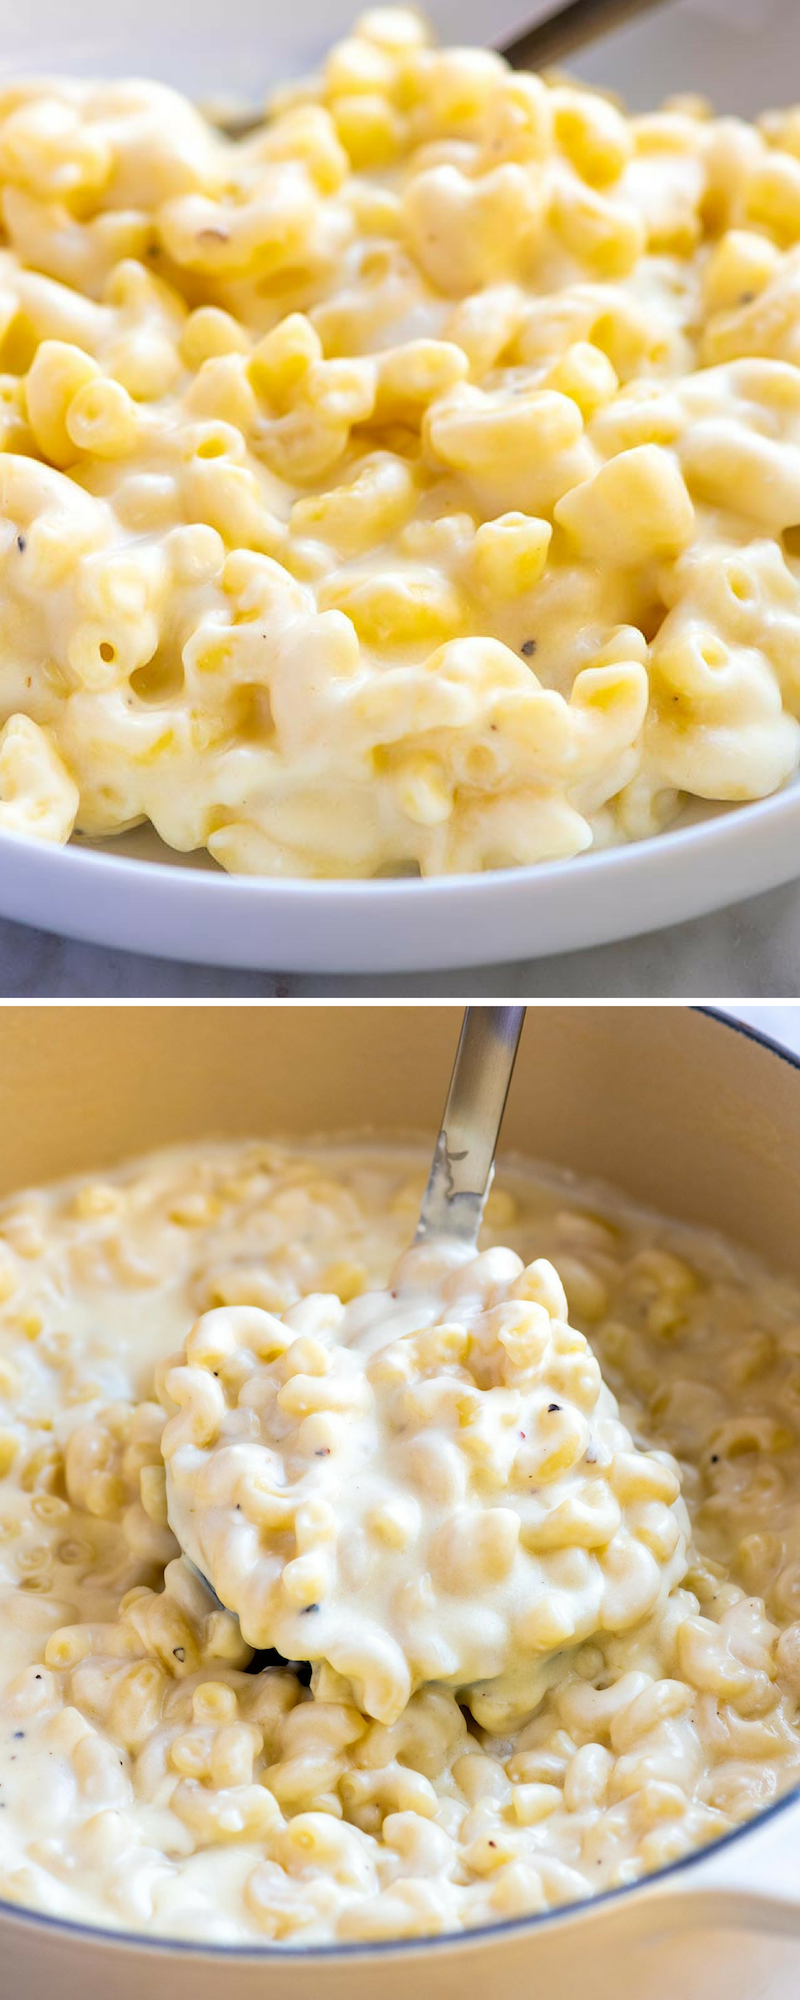 Easy Ultra Creamy Mac And Cheese Recipe Best Mac N Cheese Recipe Homemade Mac And Cheese Recipe Easy Creamy Mac And Cheese